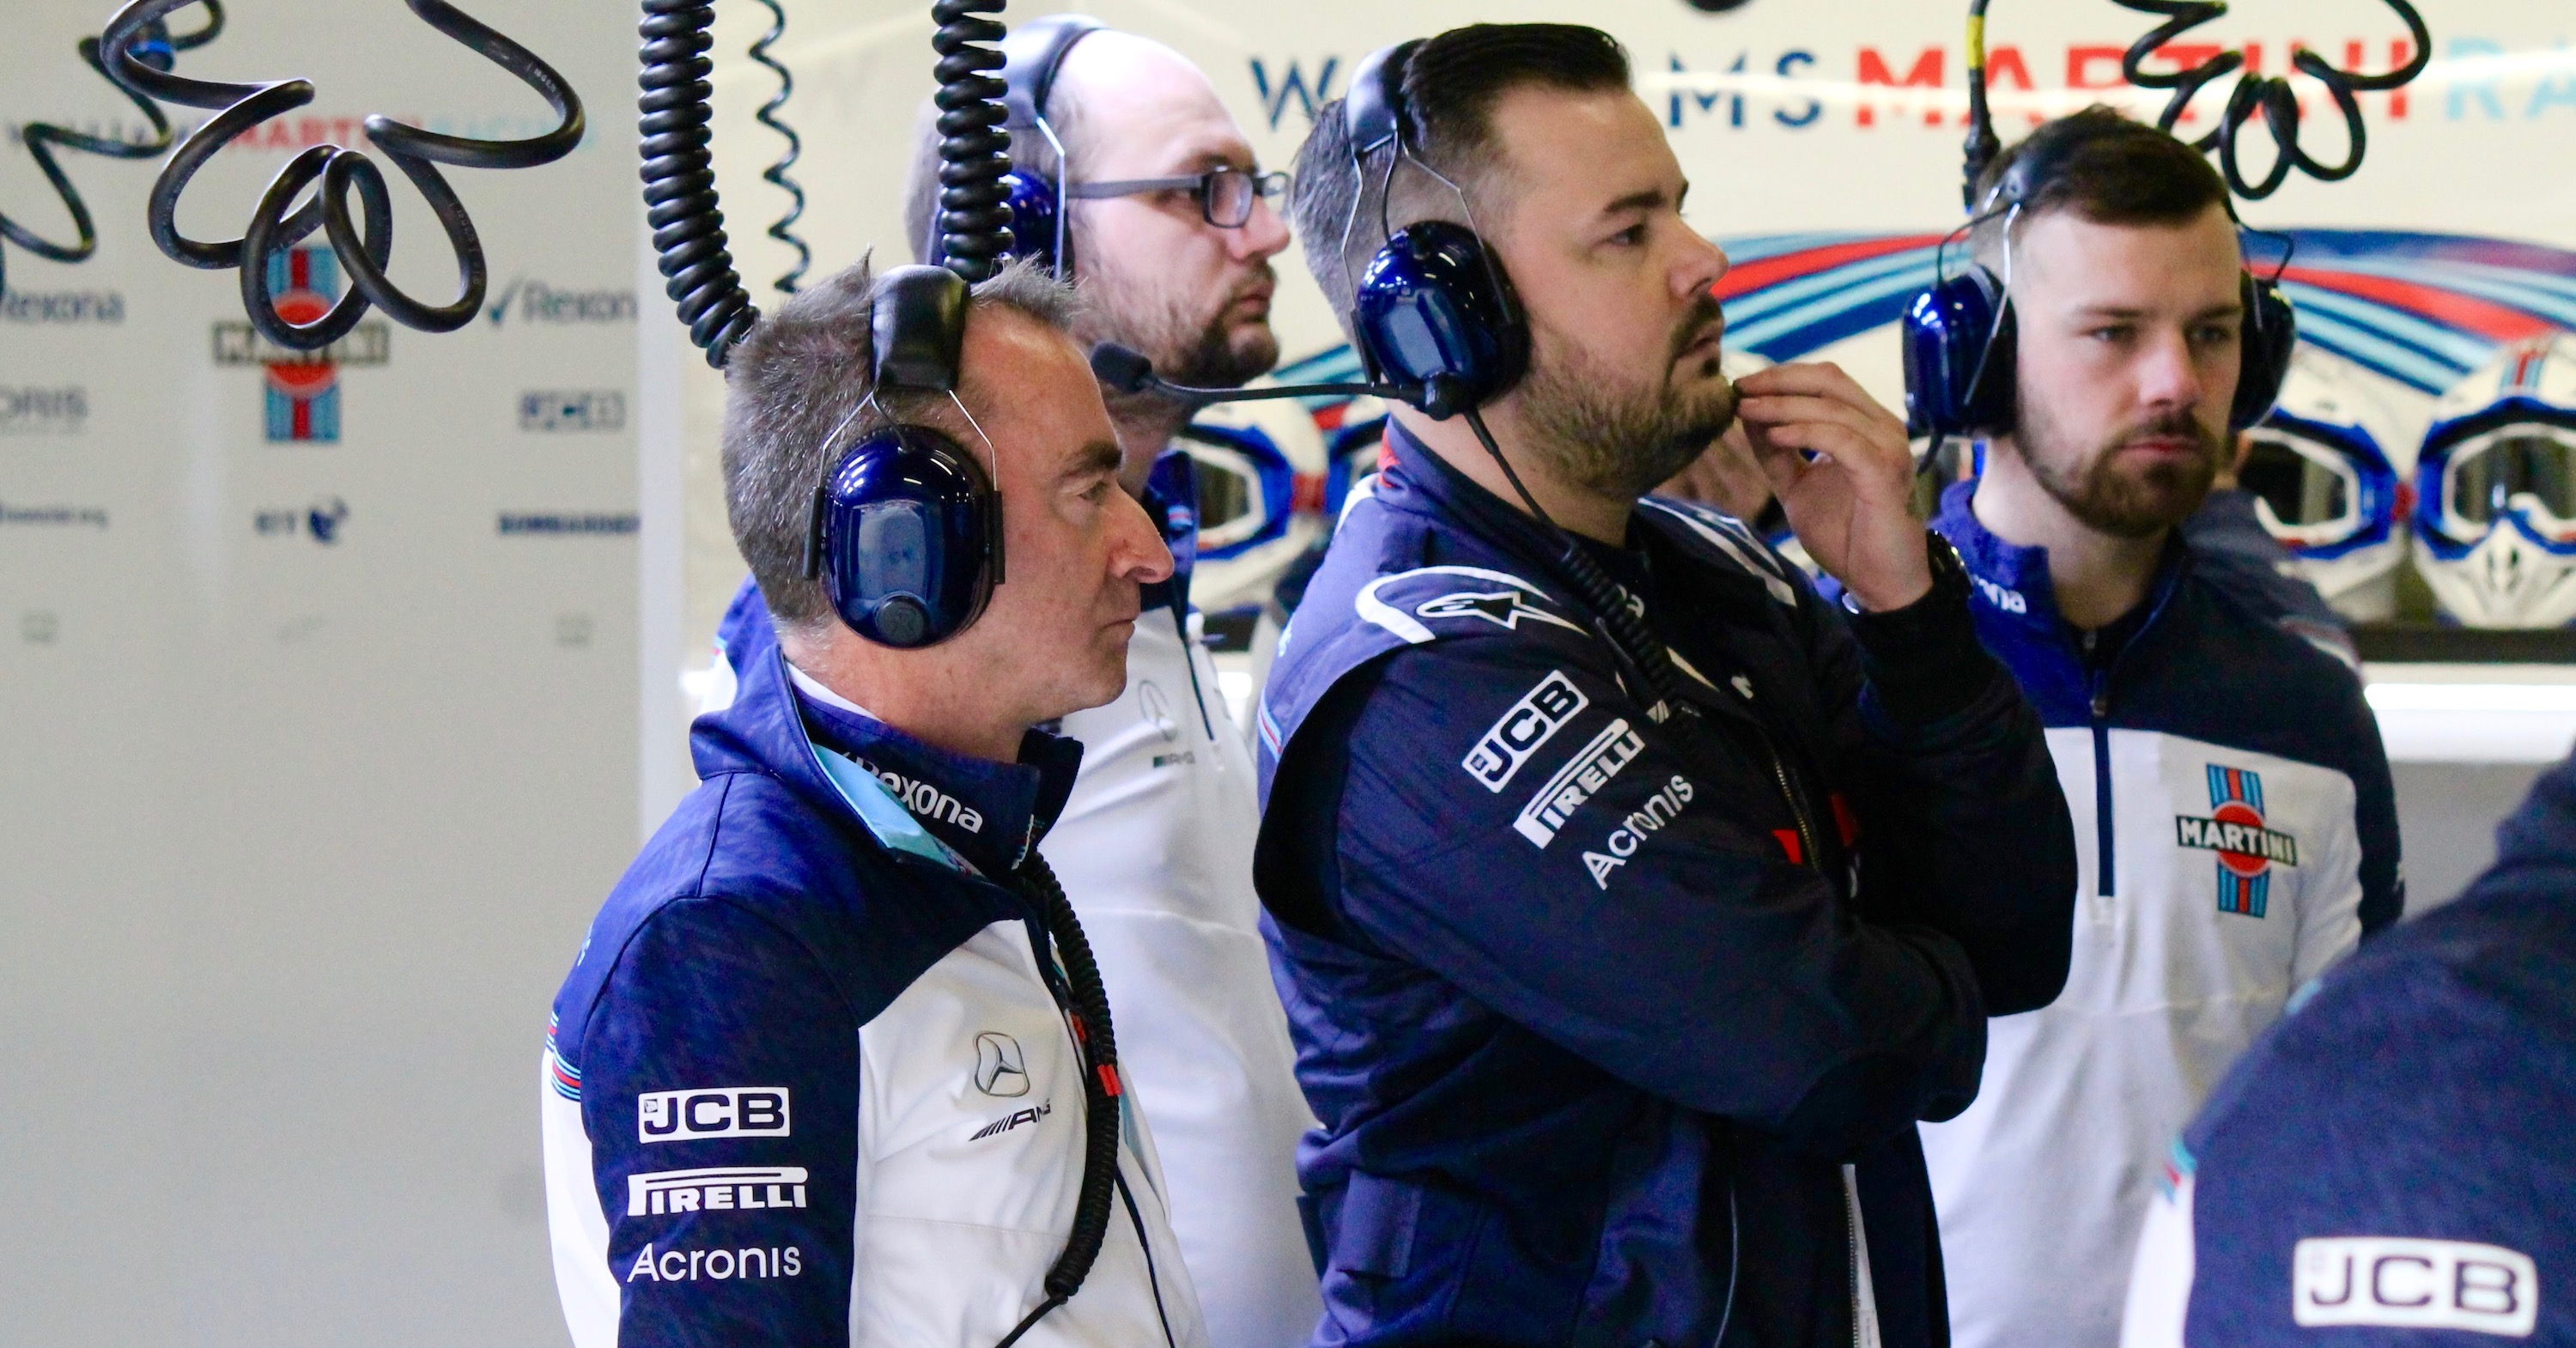 Formula 1 Radios - Williams Martini Racing garage.